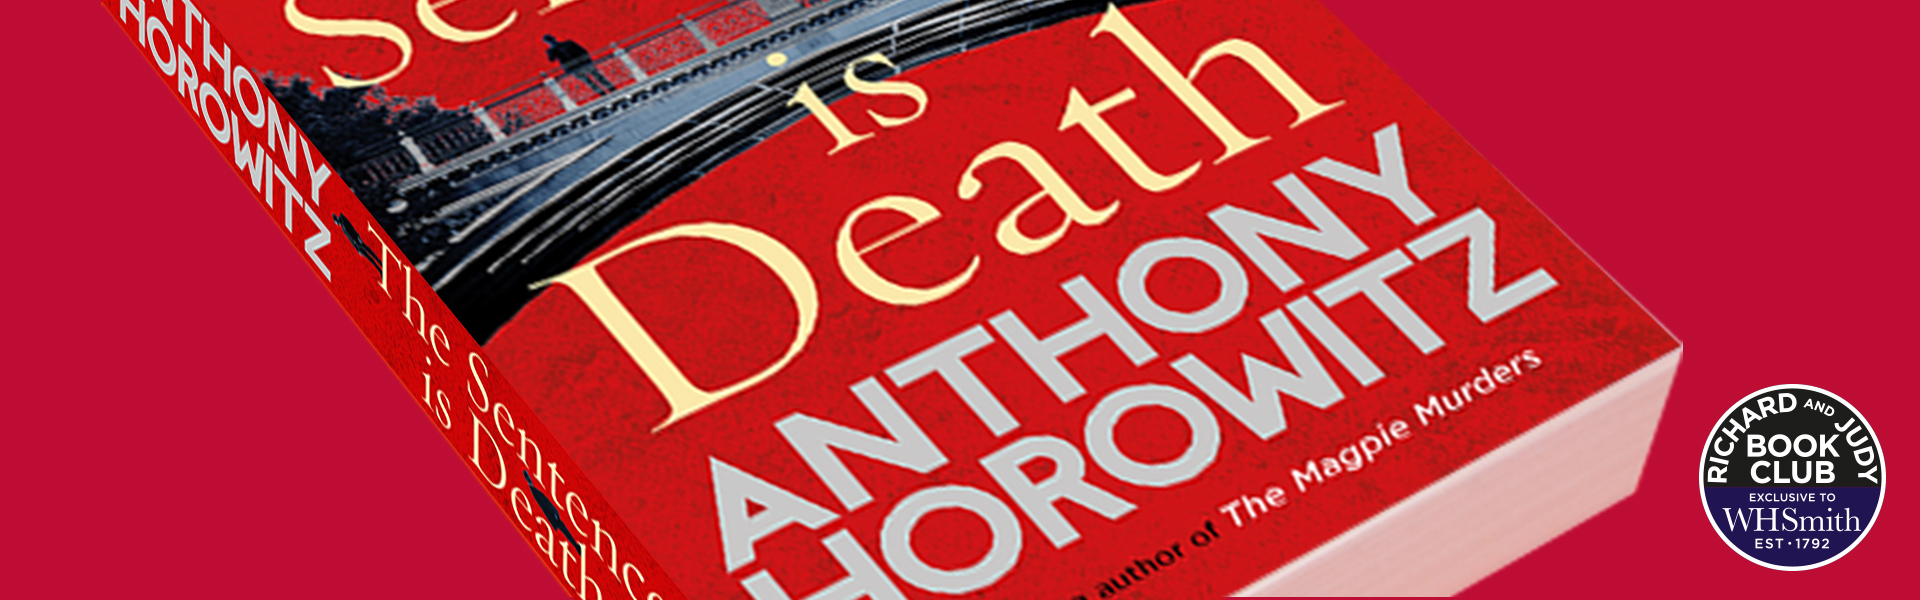 Richard and Judy Introduce The Sentence is Death by Anthony Horowitz